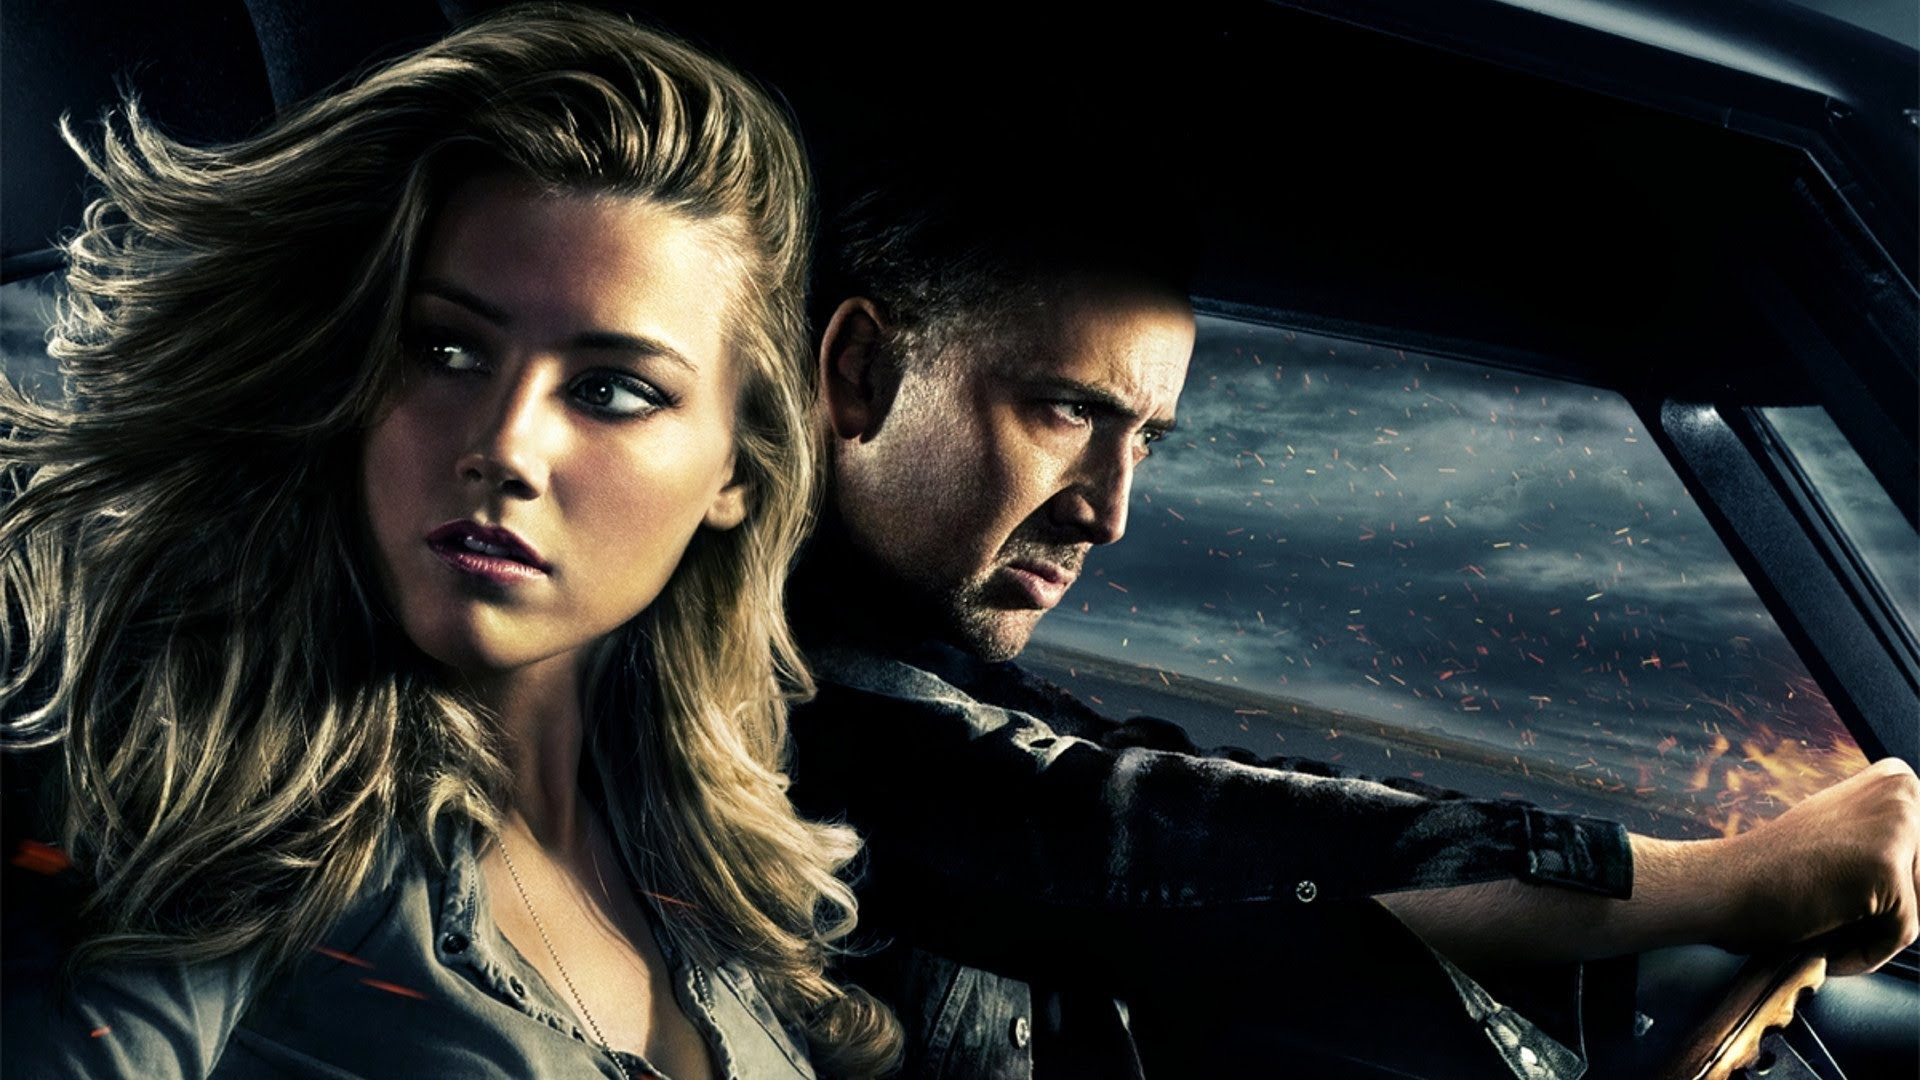 Res: 1920x1080, Nice Images Collection: Drive Angry Desktop Wallpapers